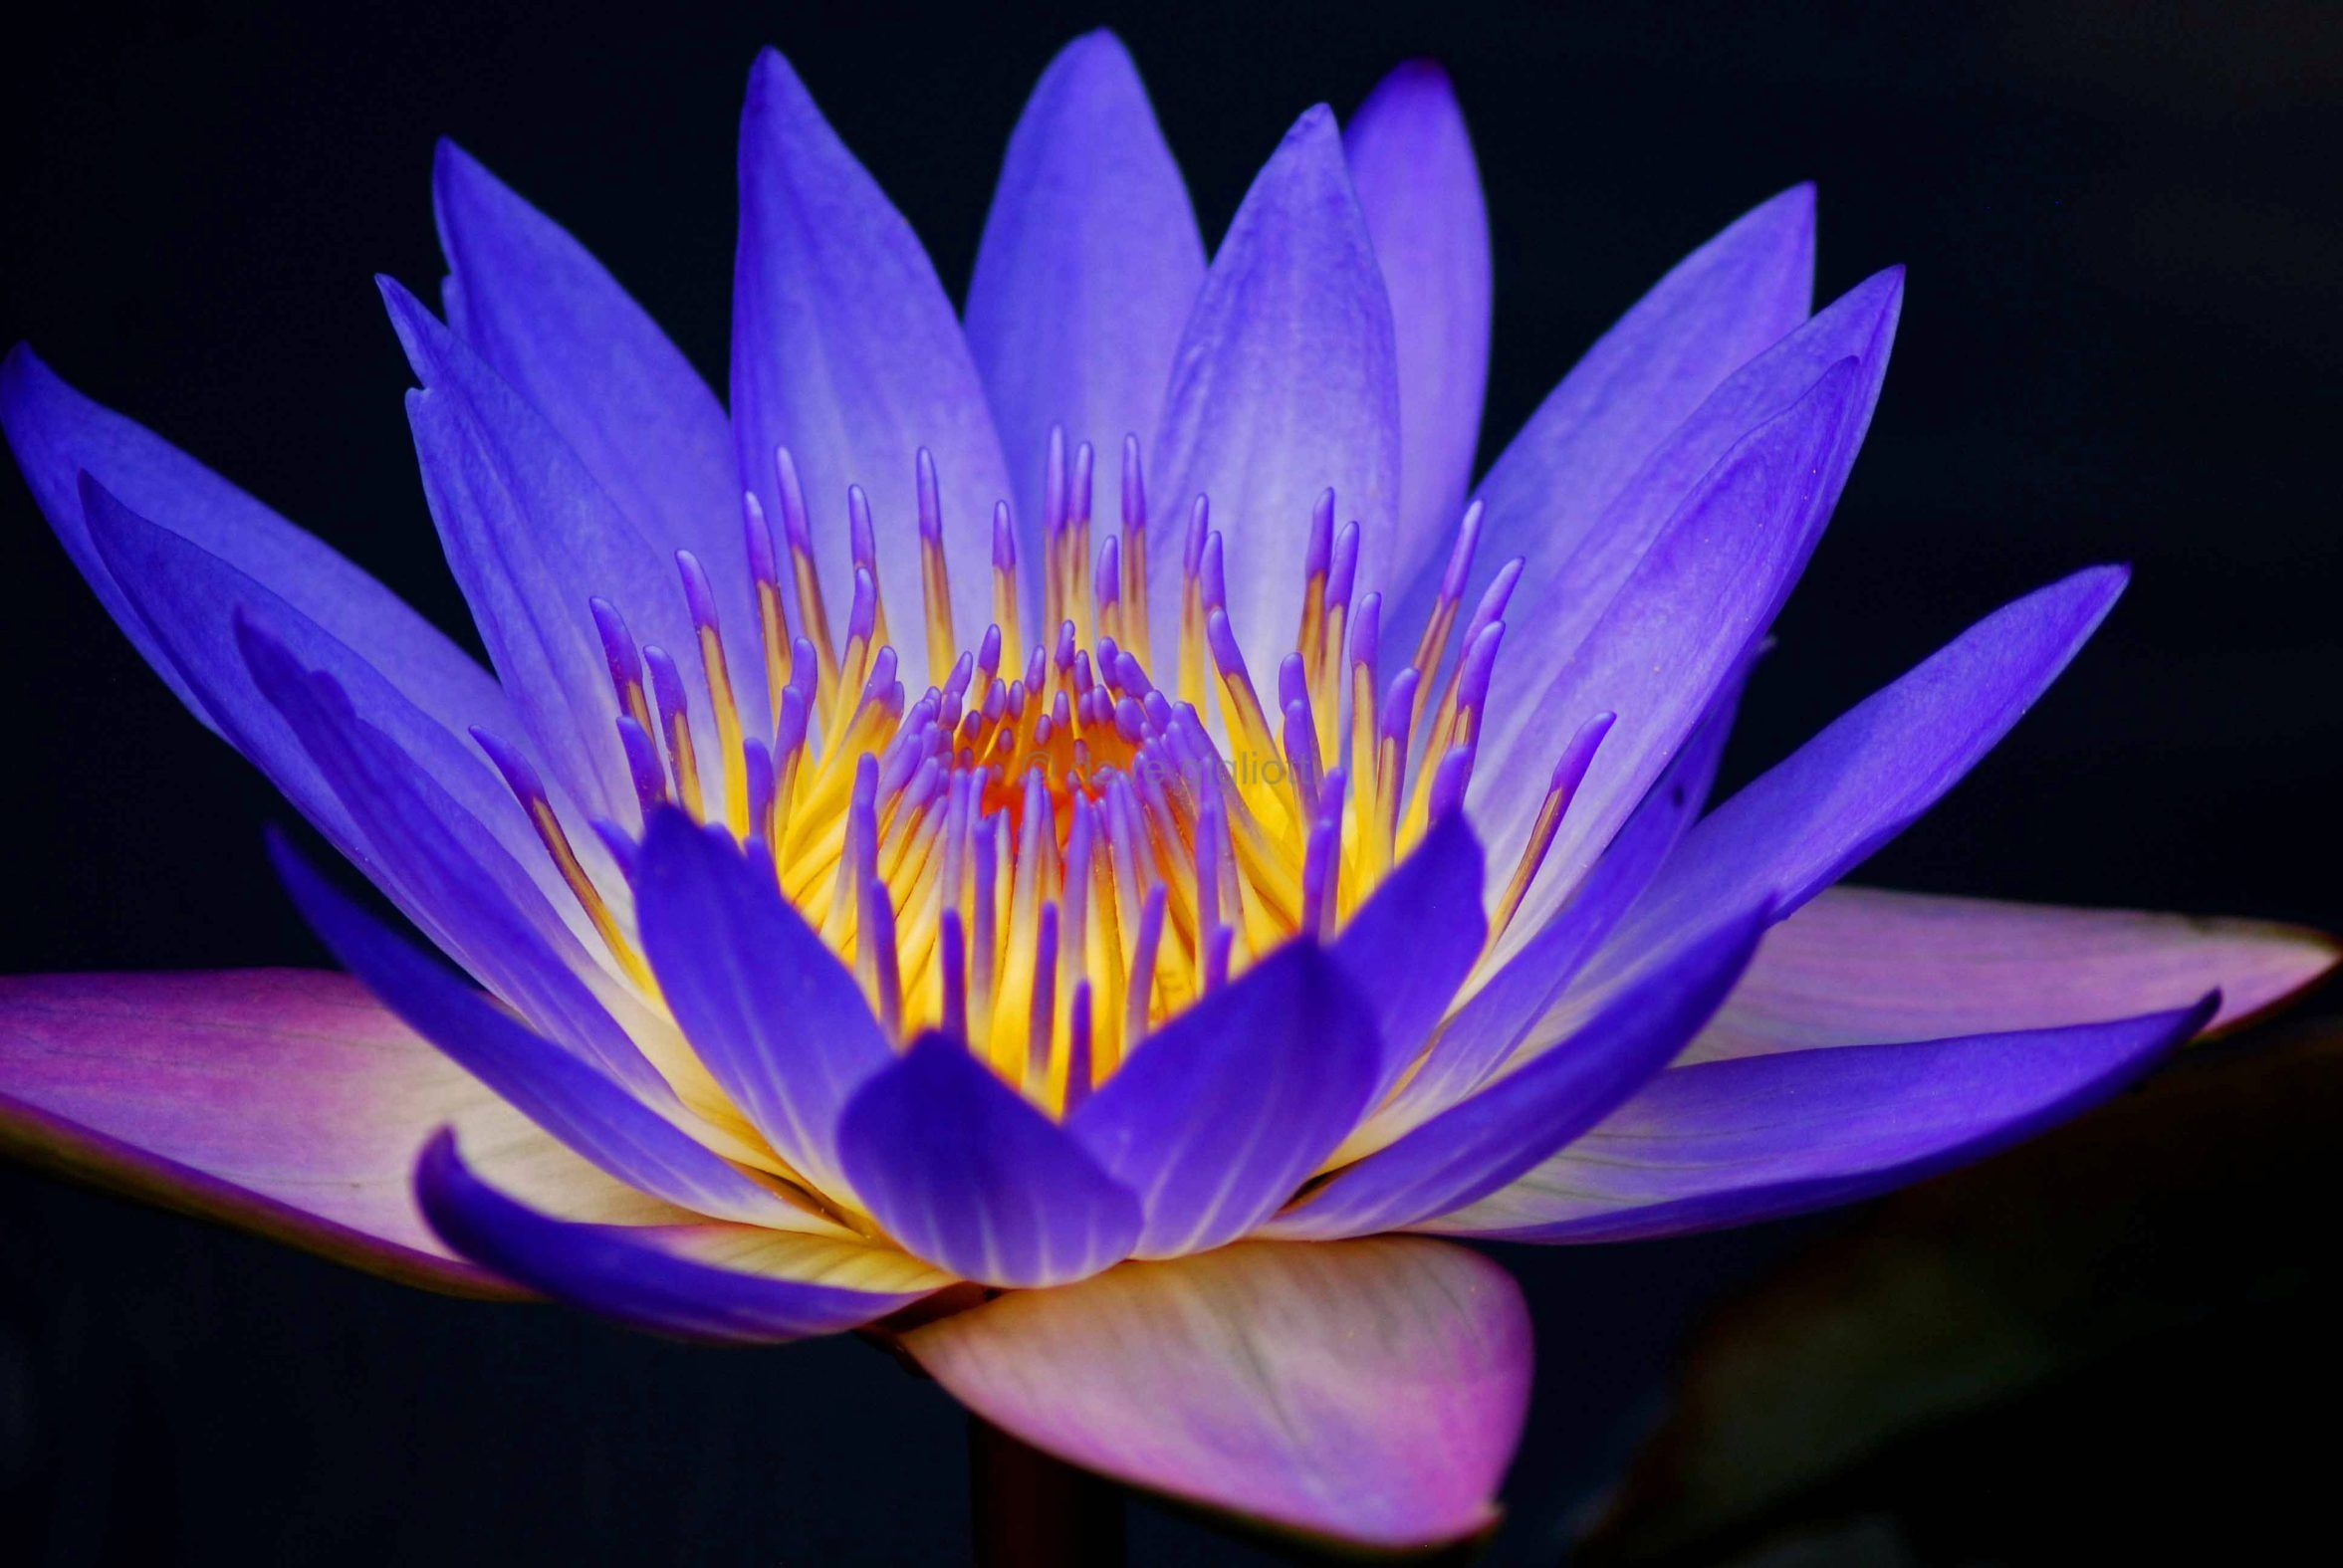 Water lily flower structure of nature flowers pinterest blue lotus flower meaning izmirmasajfo Choice Image